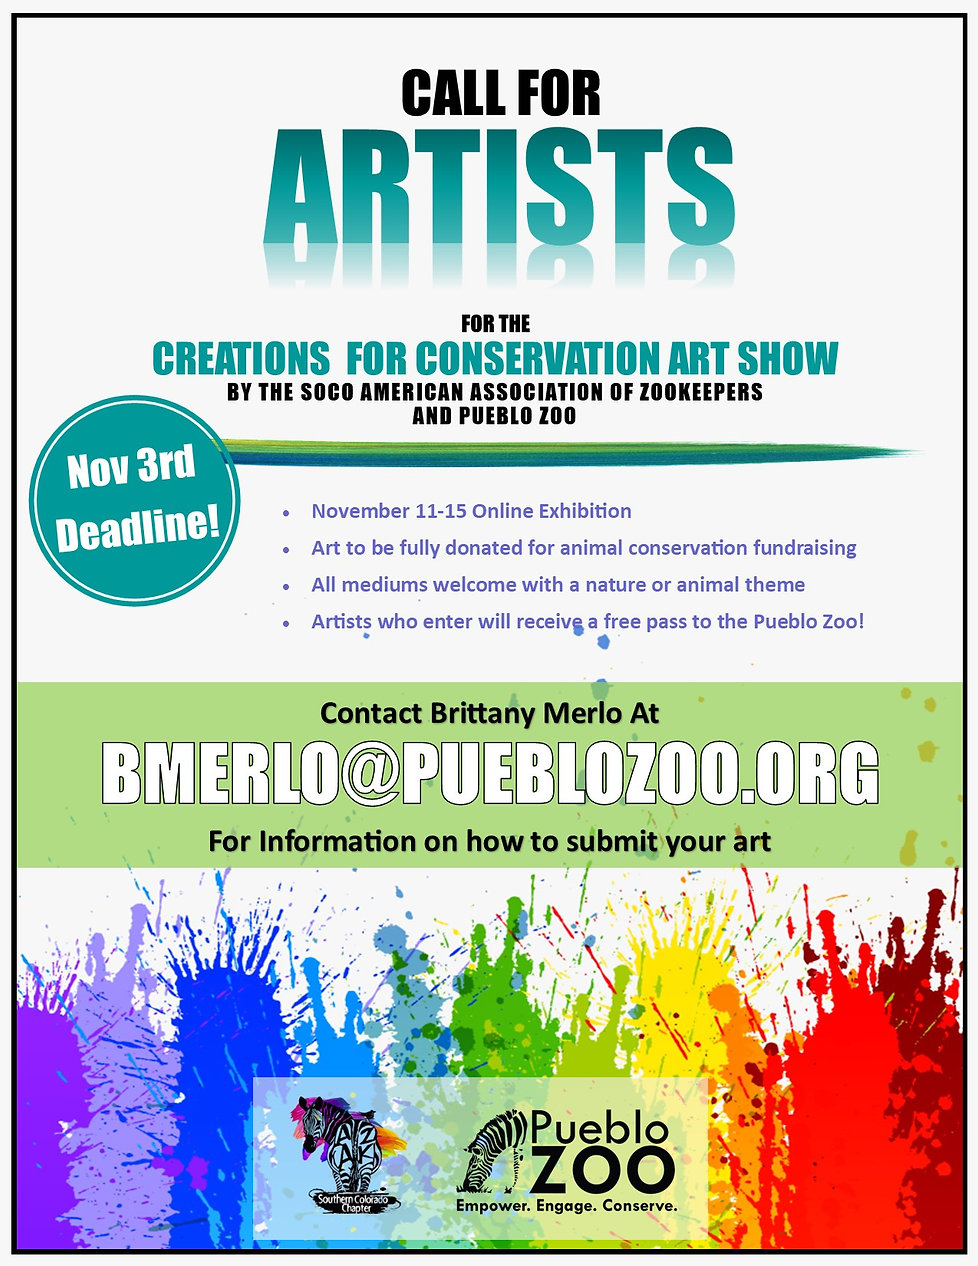 CALL FOR ARTISTS 2020.jpg